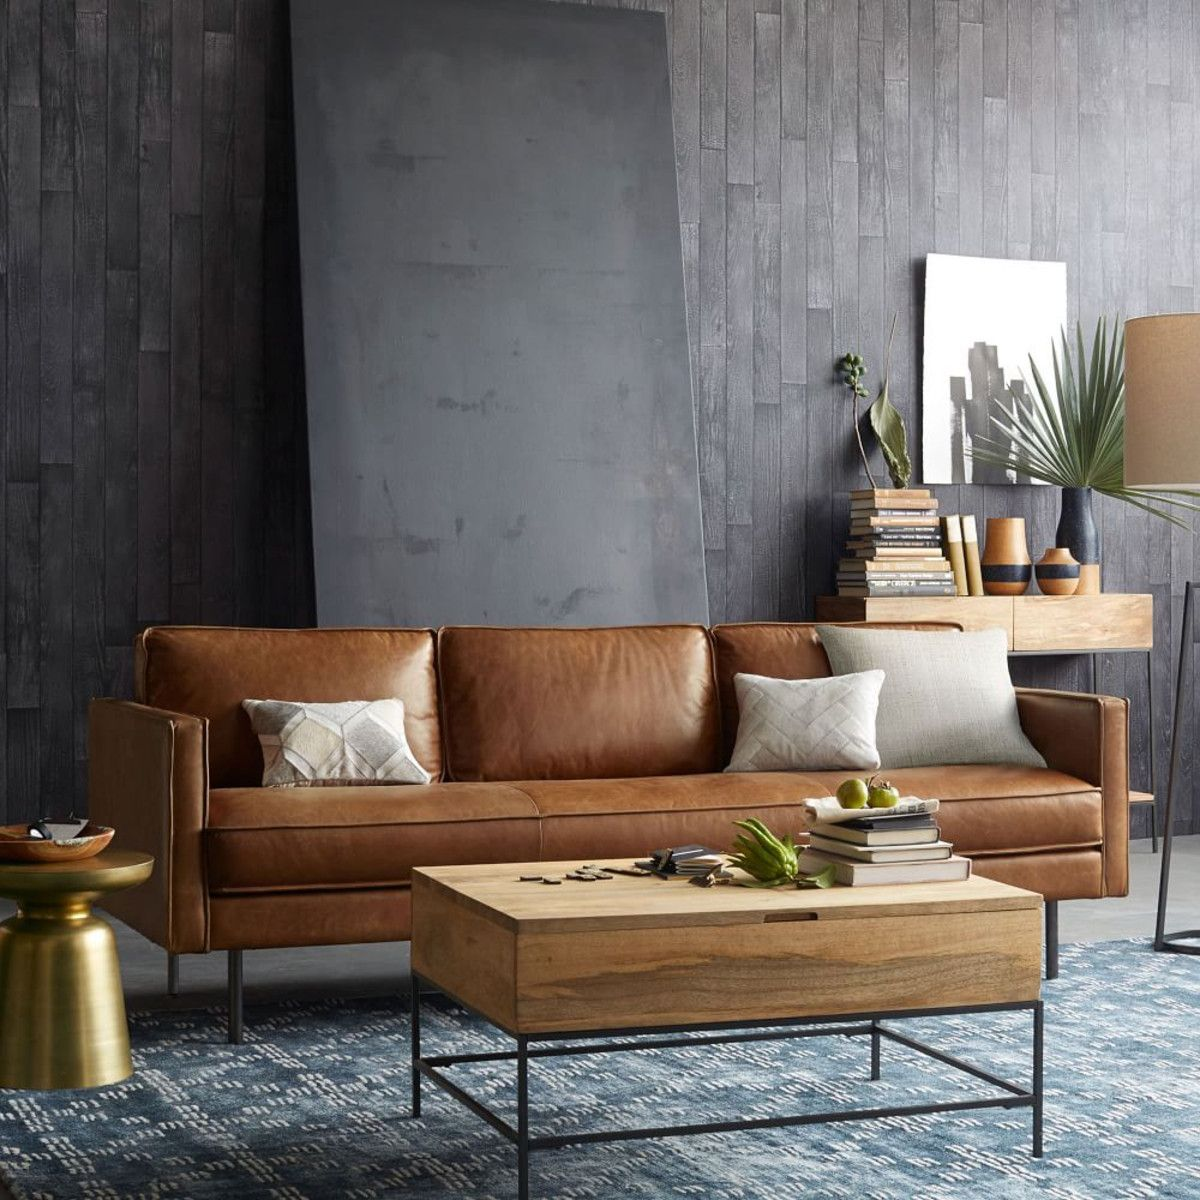 modern leather sofa. Modern Furniture, Home Decor \u0026 Accessories | West Elm. Brown Leather CouchesWest Sofa